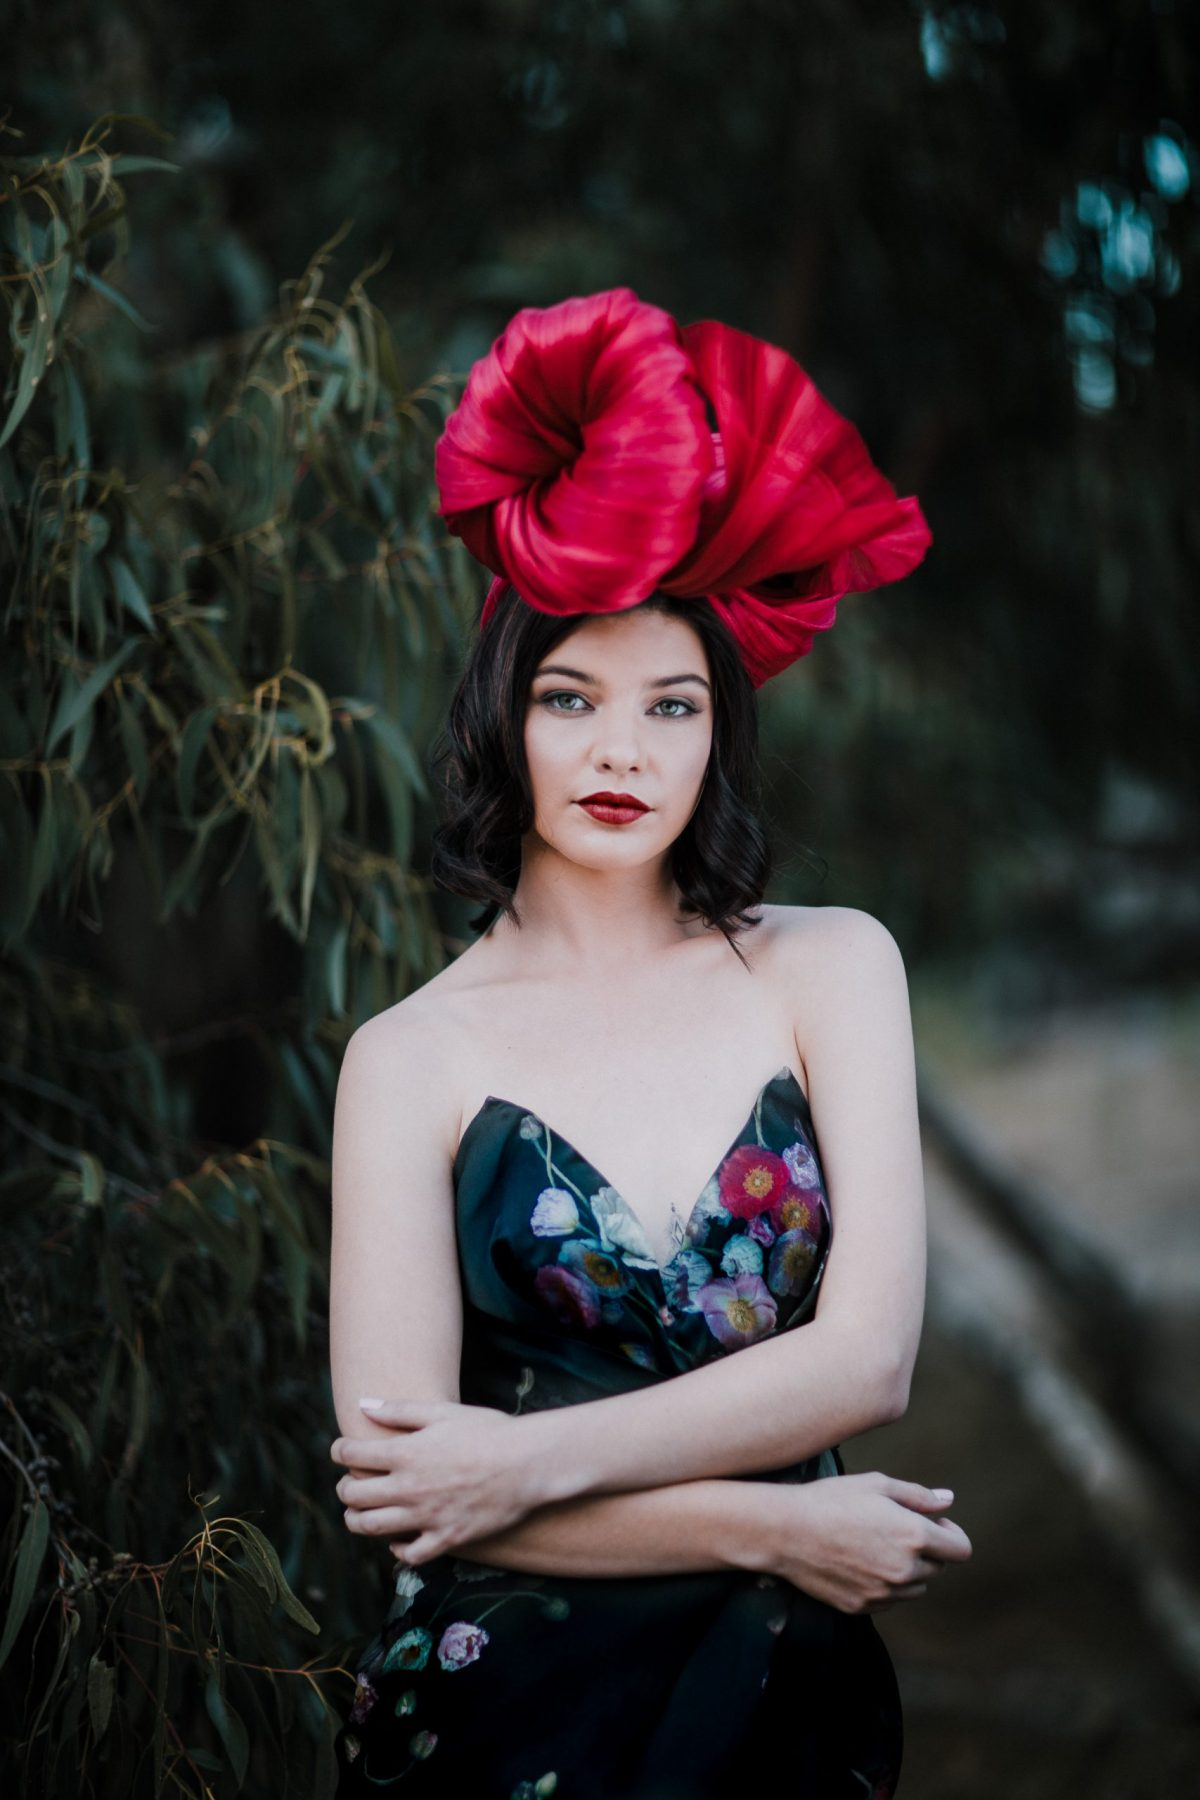 Red Millinery on model - millinery fashion photos